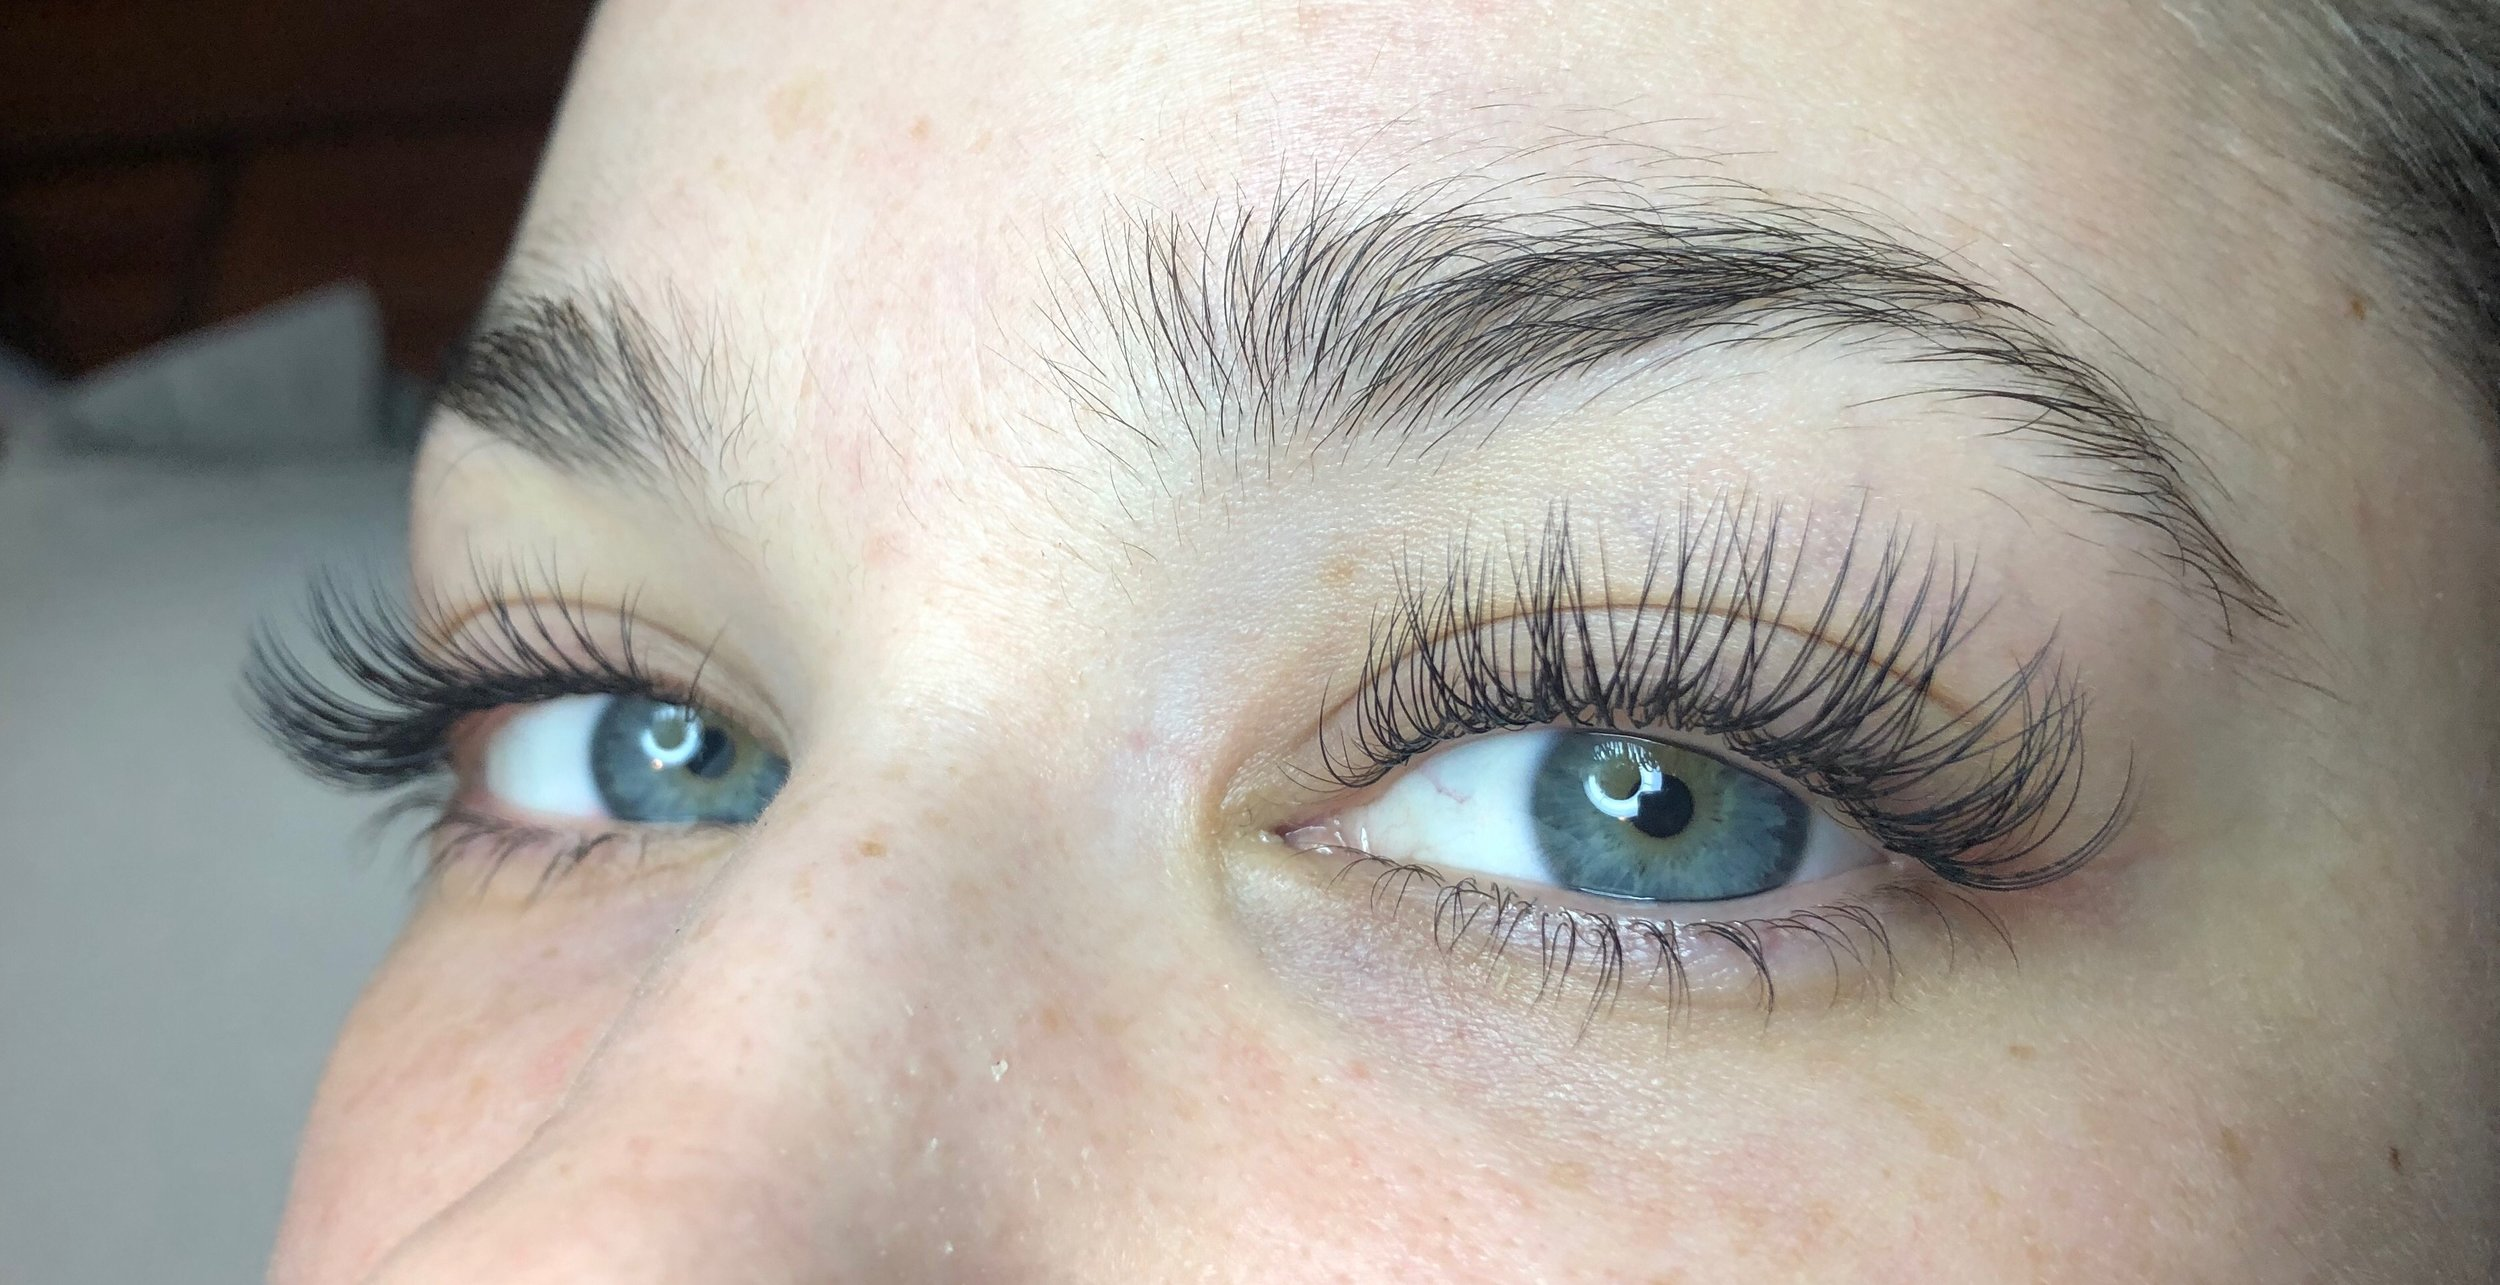 My lashes feel super lightweight and comfortable.